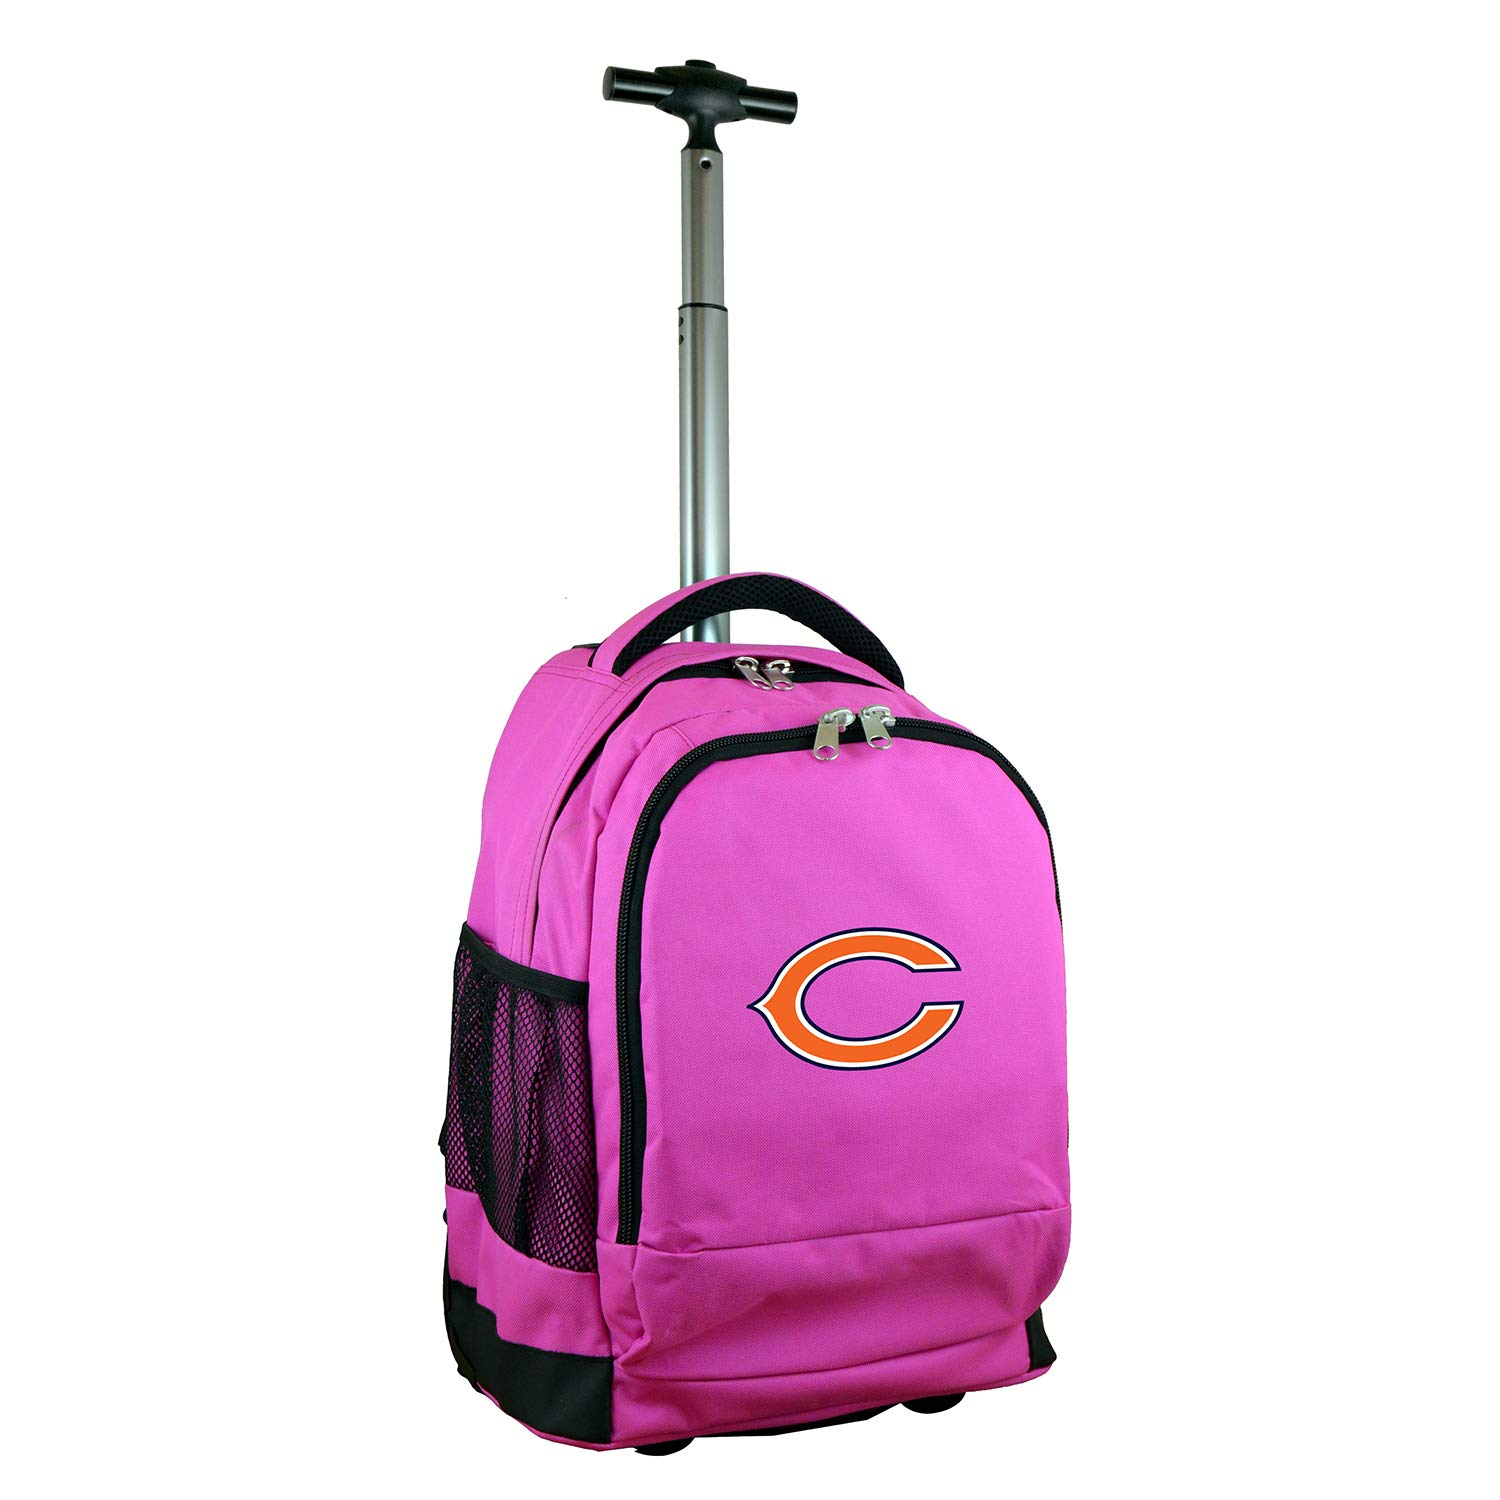 (Chicago Bears) - NFL Expedition Wheeled Backpack, 48cm , Pink B01MFFQ7QG